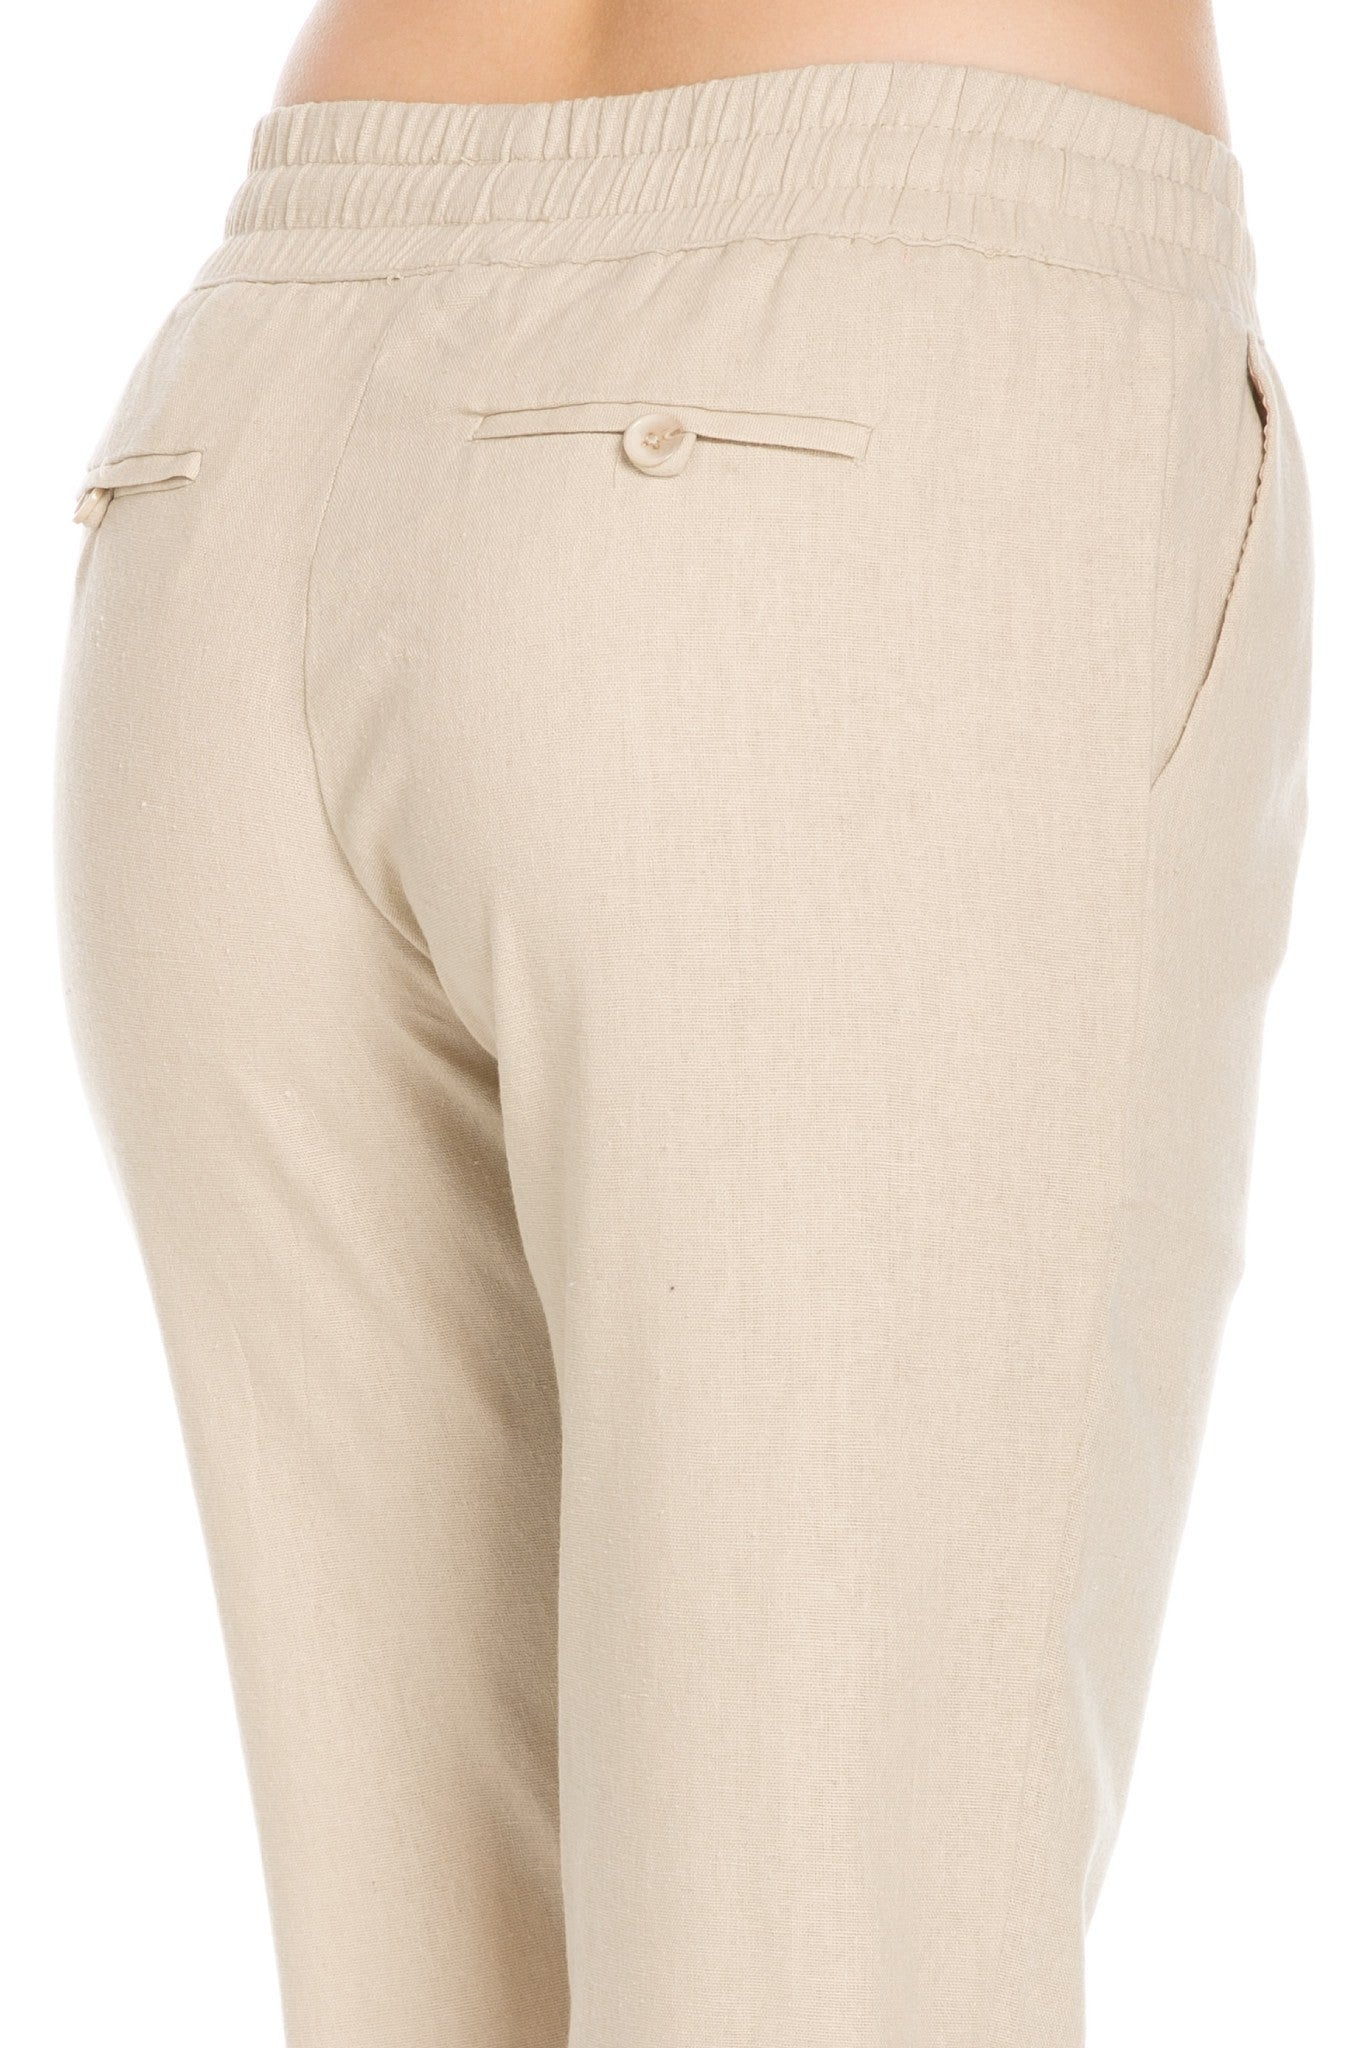 Comfy Drawstring Linen Pants Long with Band Waist (Natural) - Poplooks